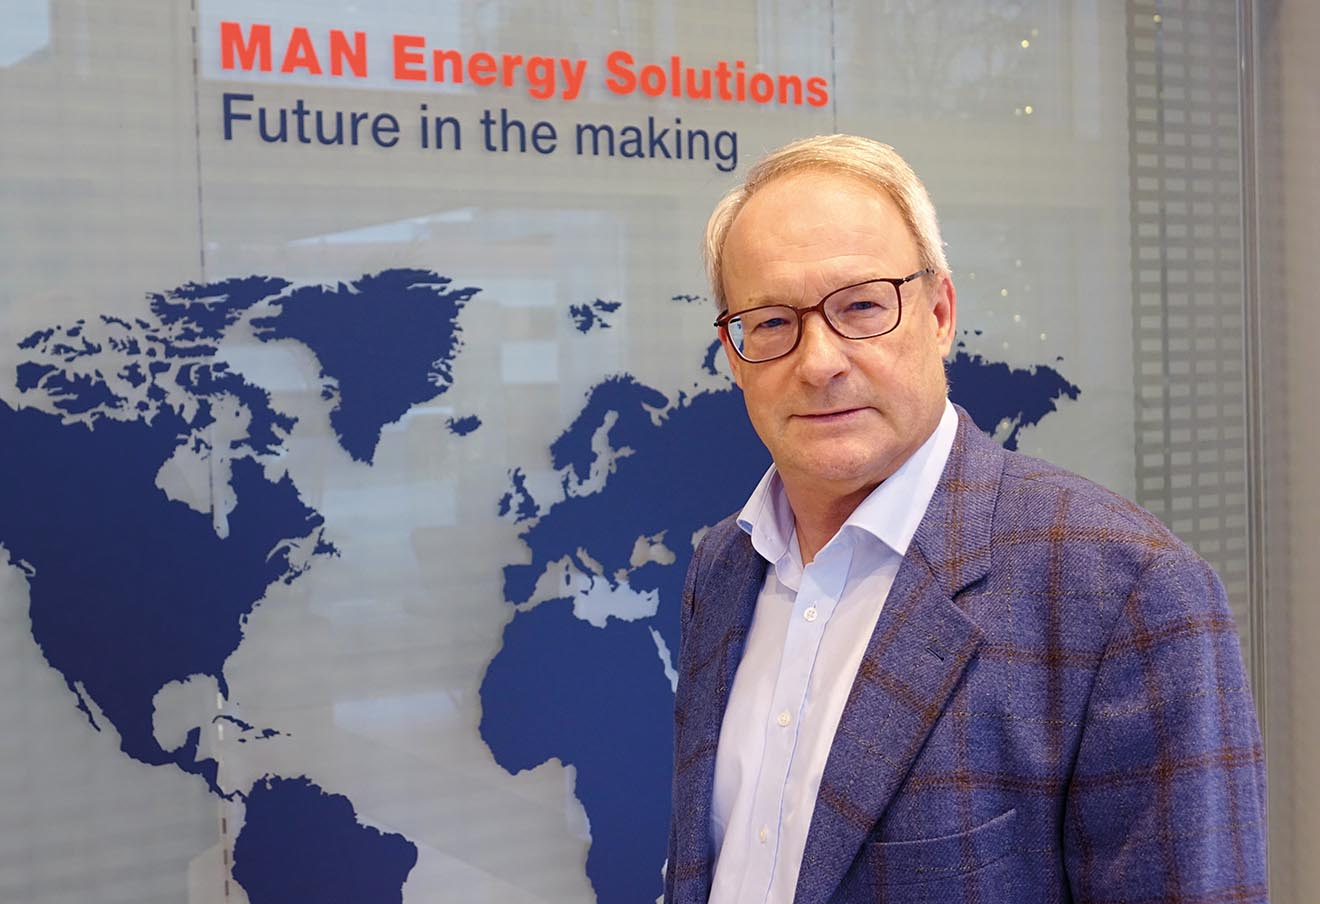 Marc Grünewald, Head of Business Development and New Energies, Power, bei MAN Energy Solutions